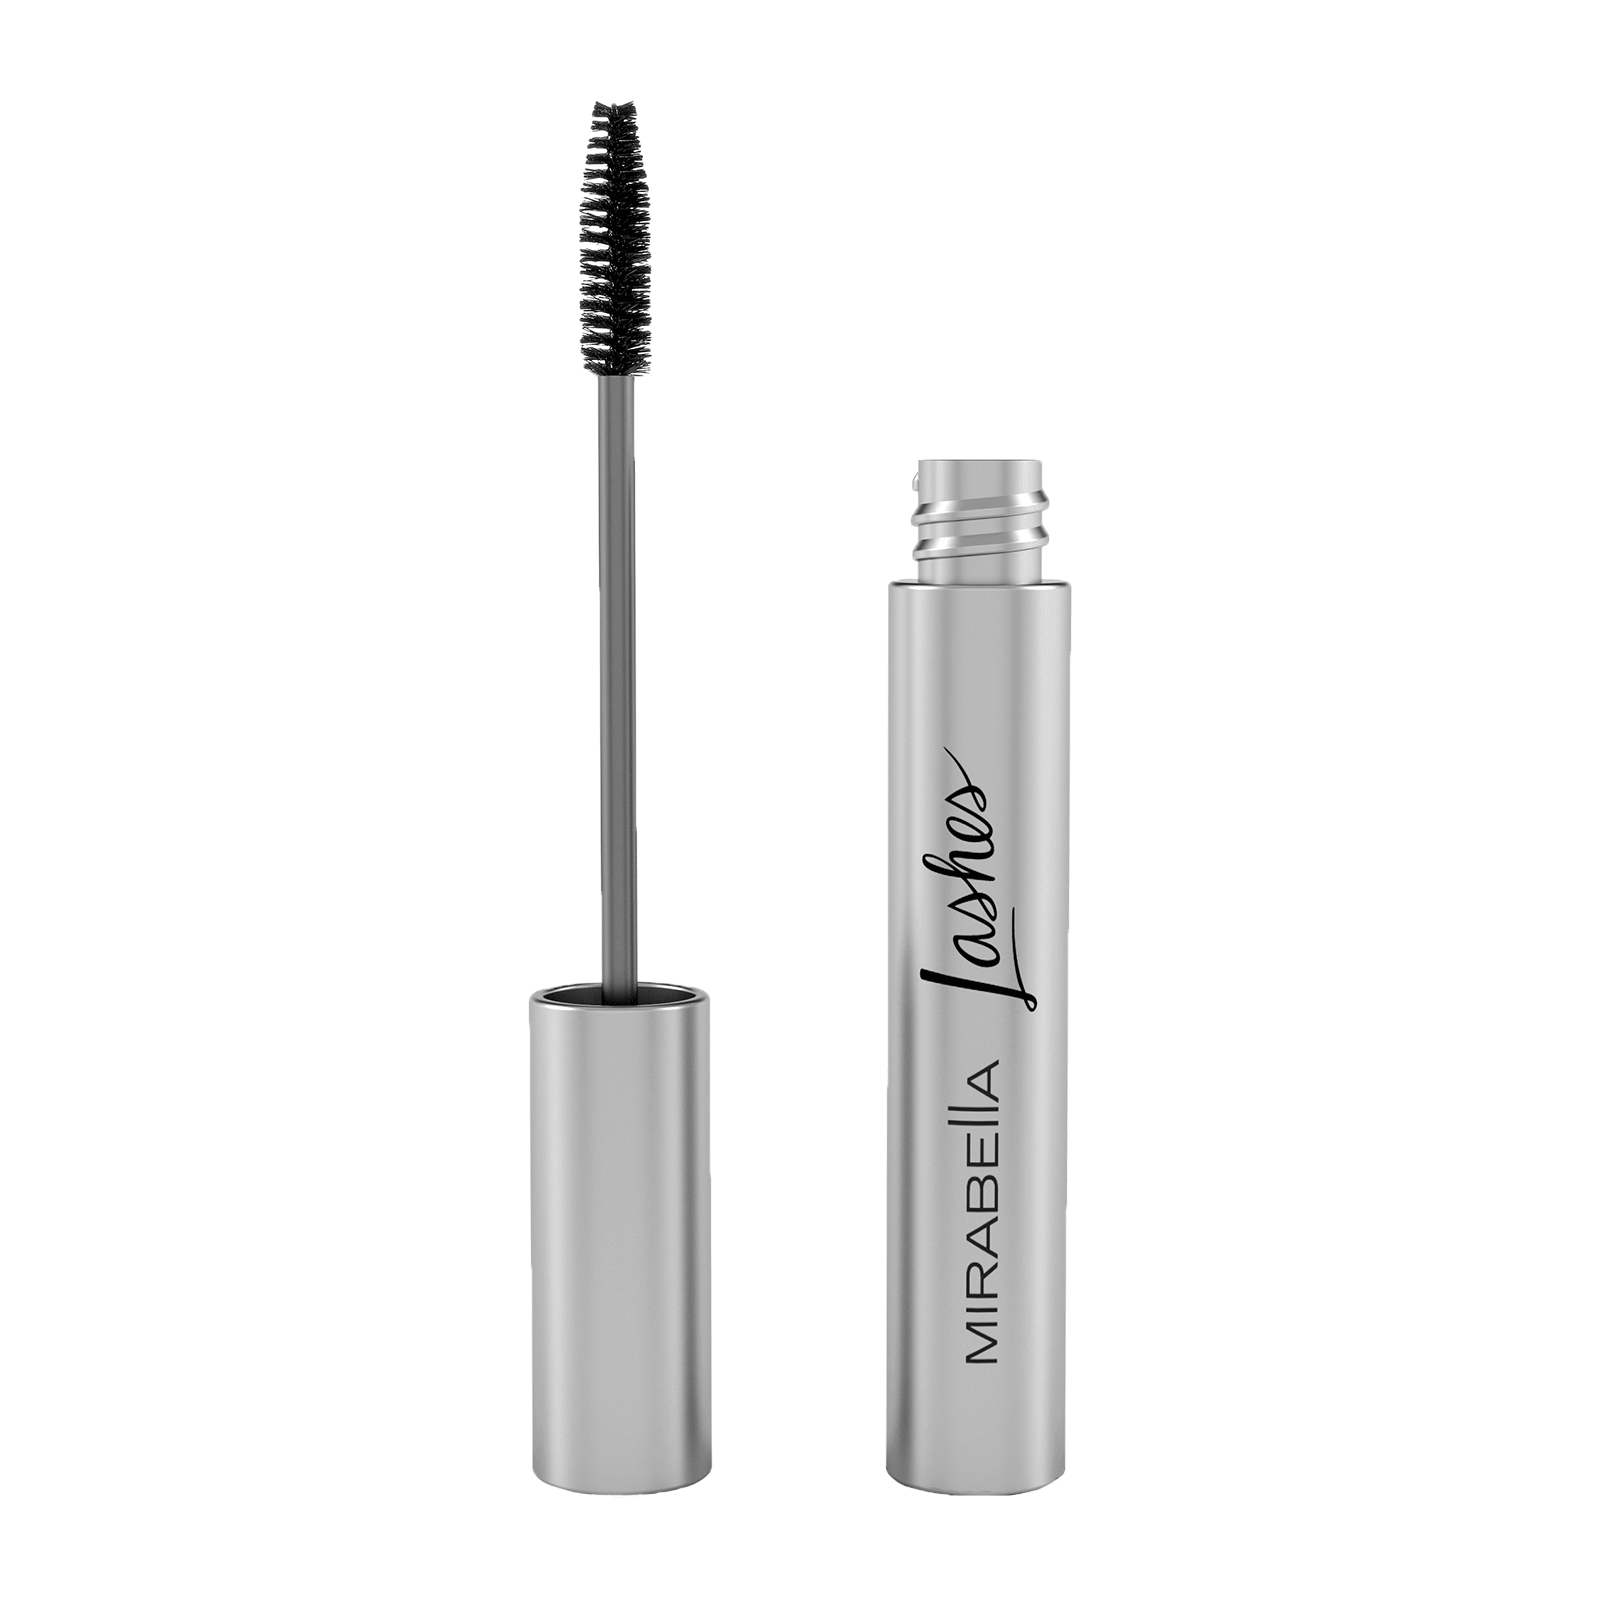 Lasting Lash Waterproof Mascara